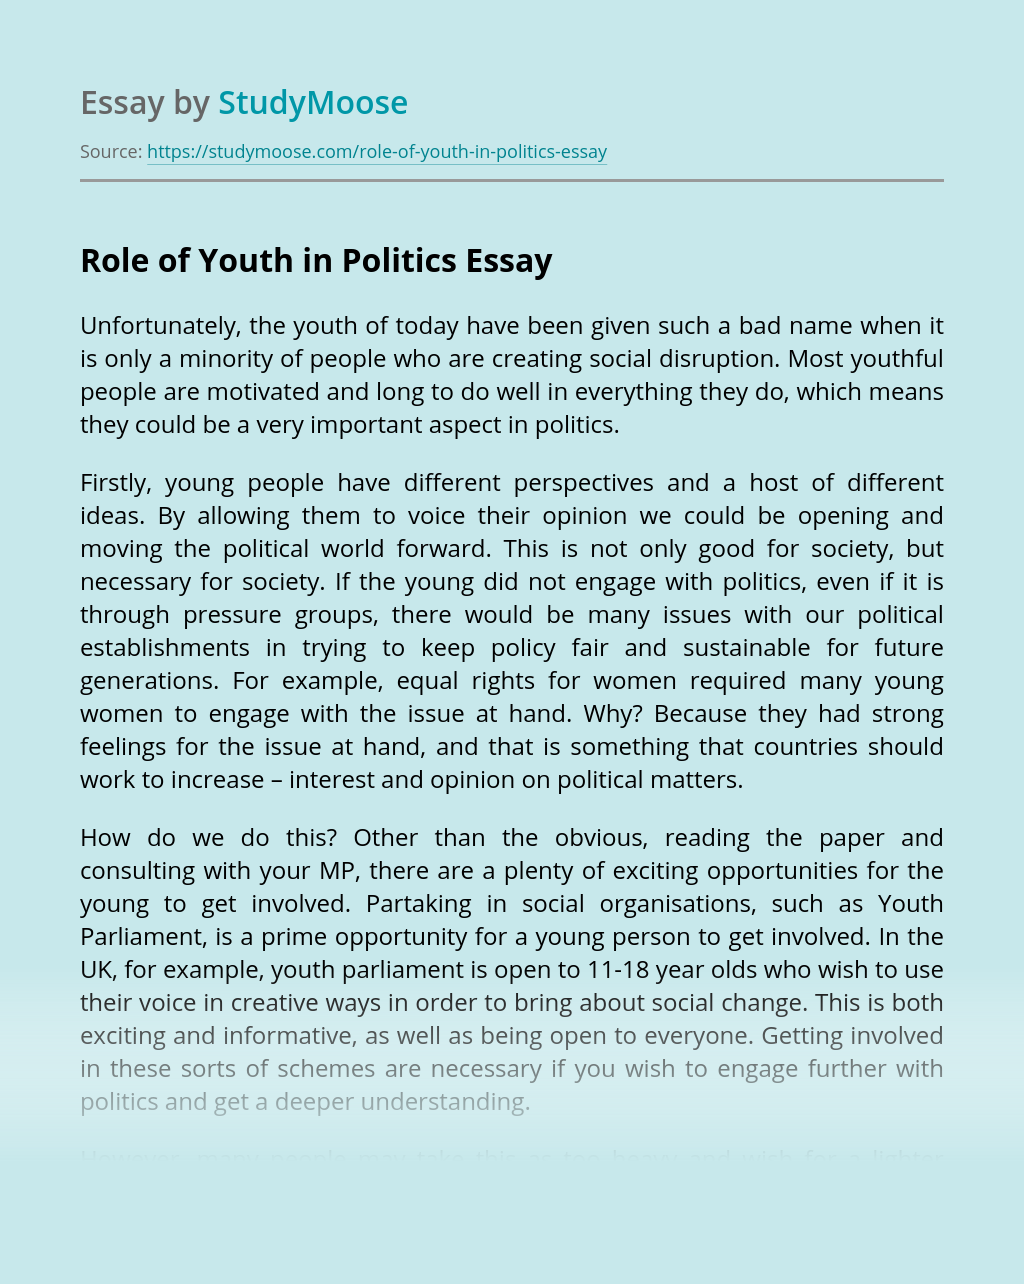 Role of Youth in Politics